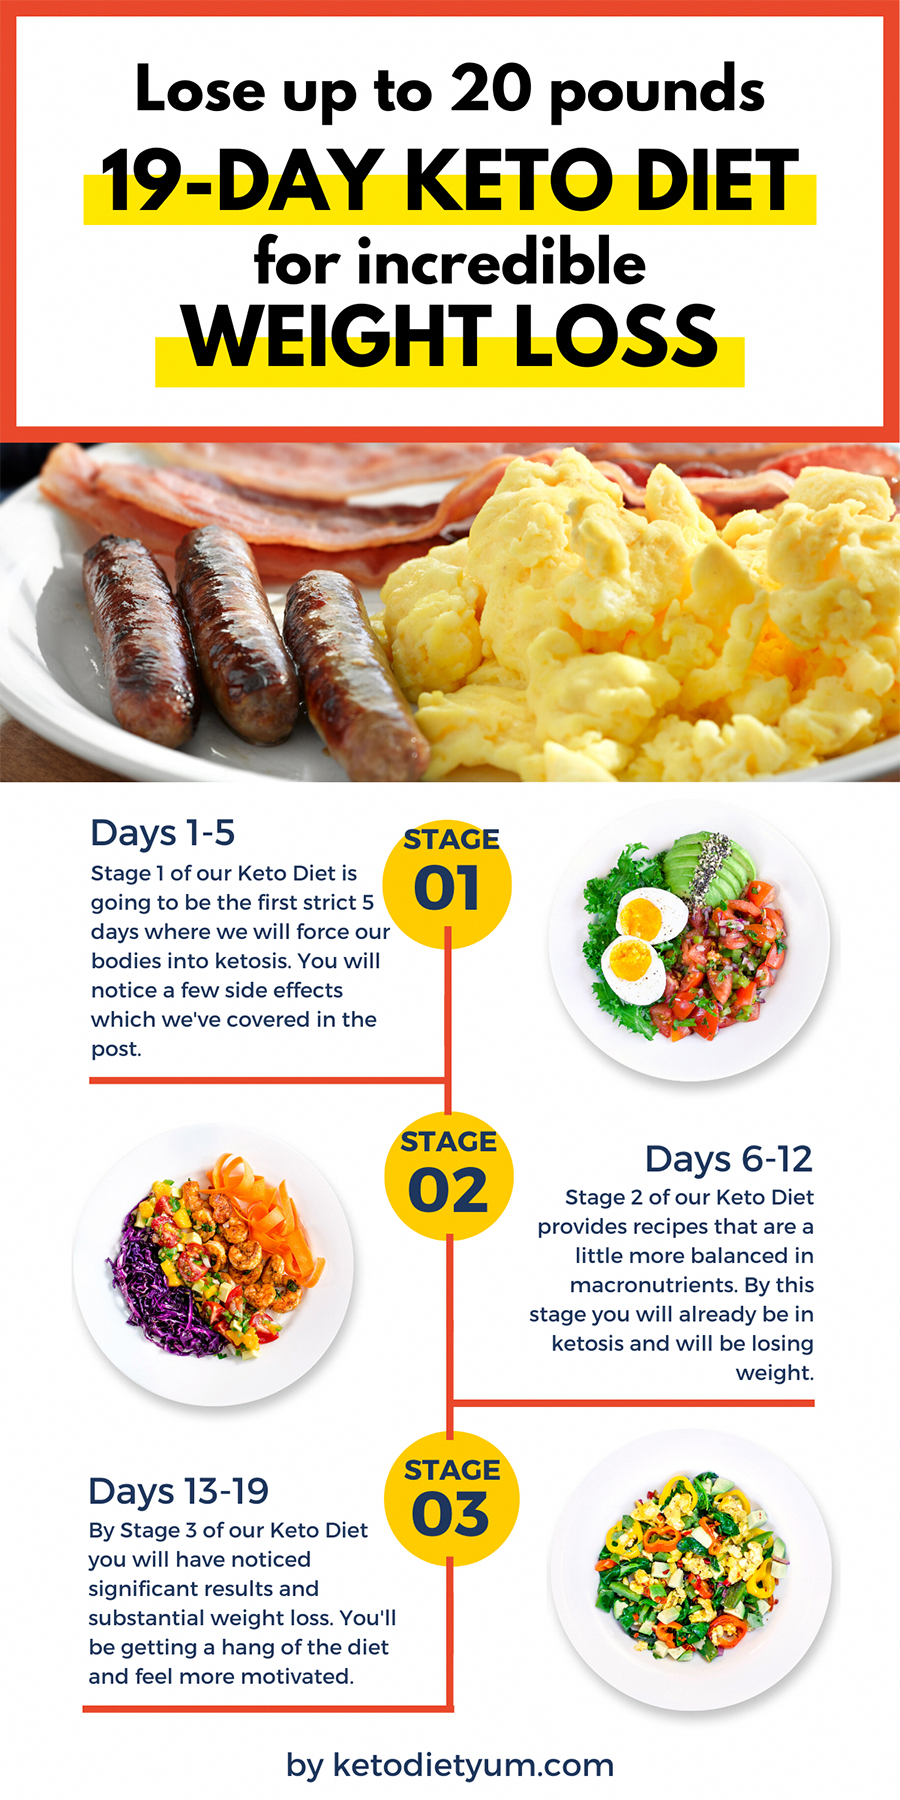 Keto Diet For Uterine Fibroids Lowcarbhighfatketogenicdiet Ketogenic Diet Meal Plan Ketogenic Diet For Beginners Keto Diet Food List